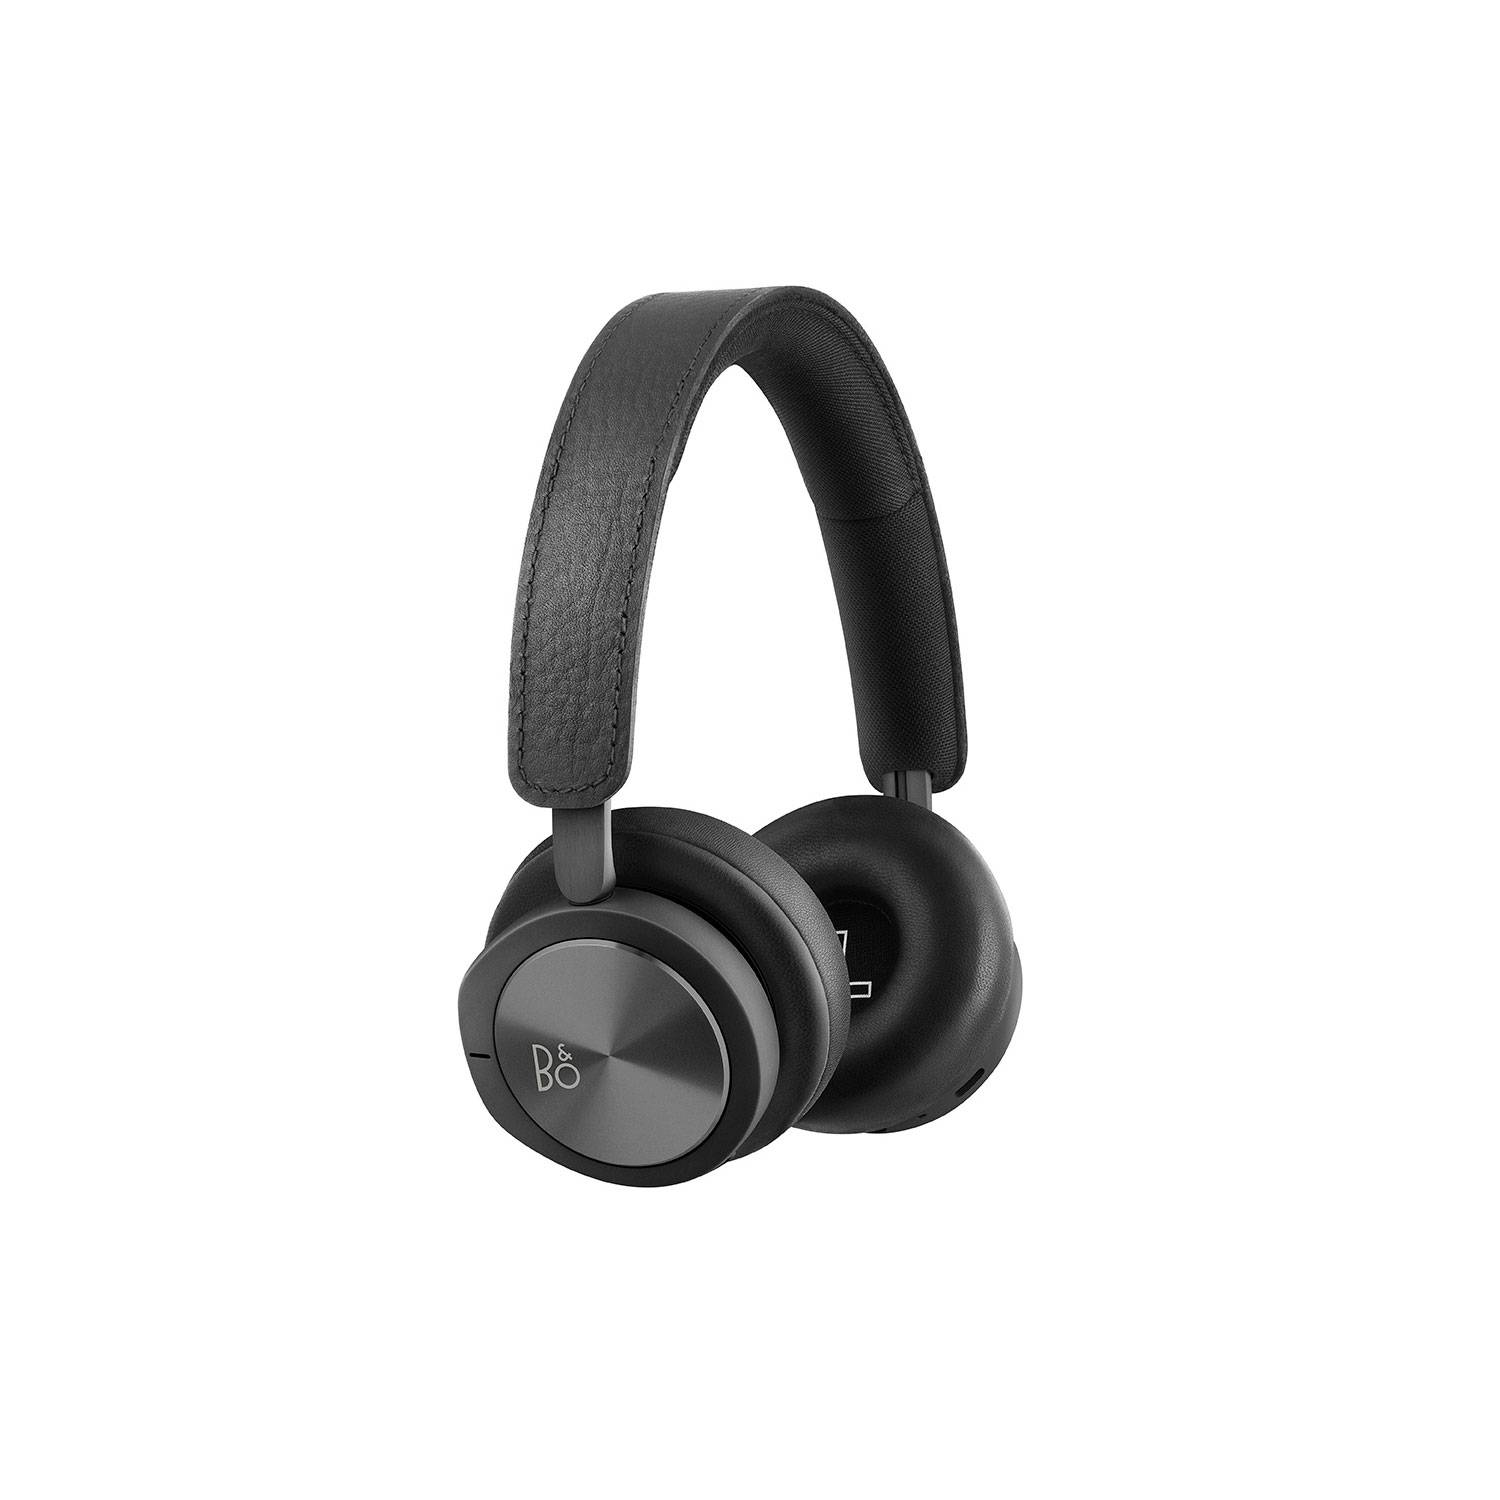 B&O Play BeoPlay H8i Wireless ANC Headphones, Black